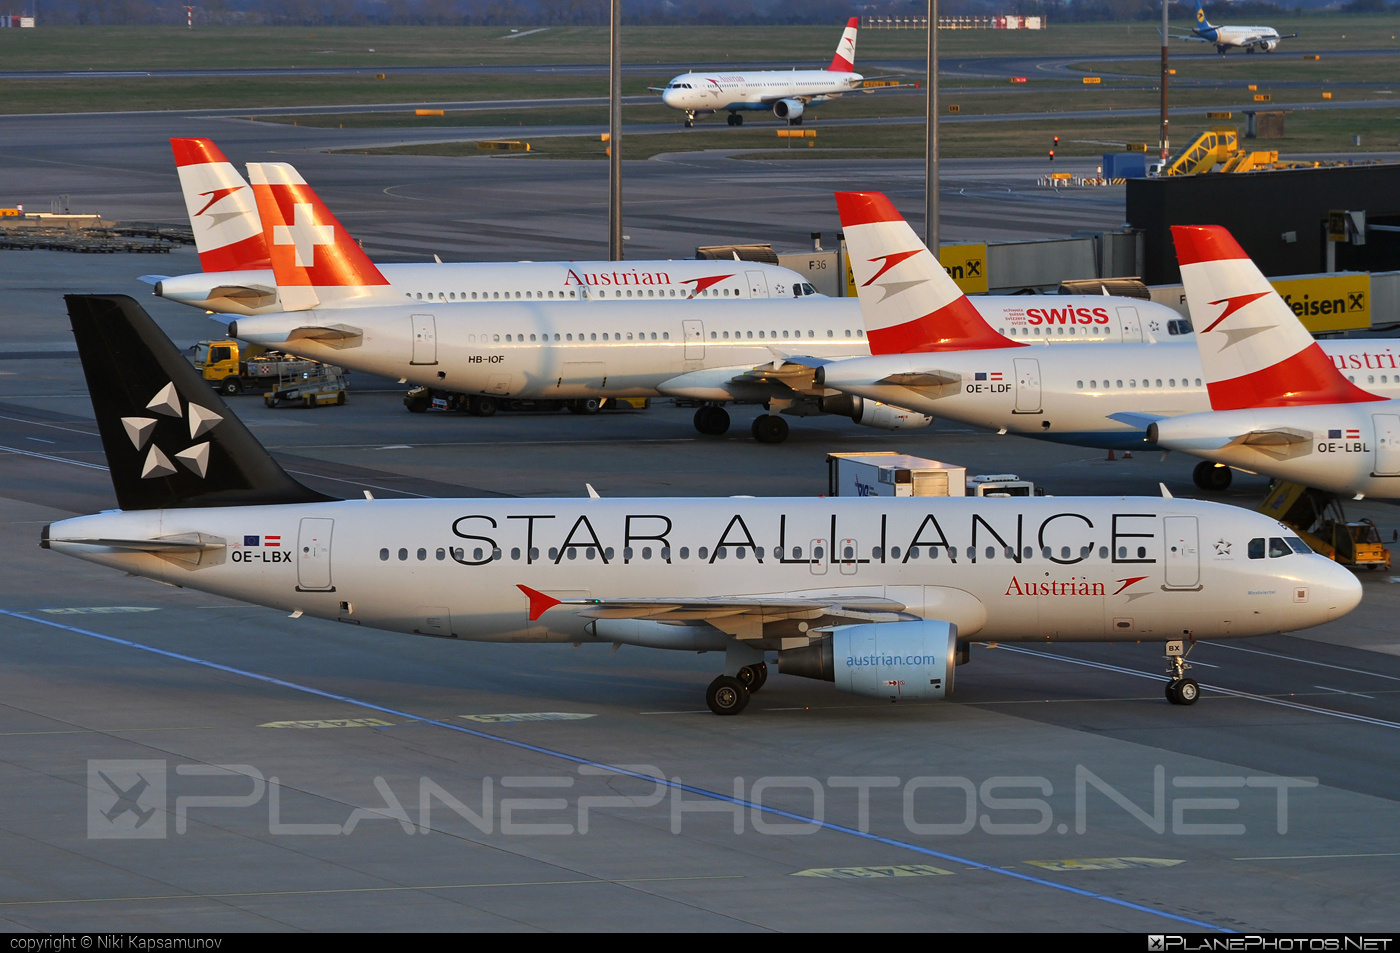 Airbus A320-214 - OE-LBX operated by Austrian Airlines #a320 #a320family #airbus #airbus320 #staralliance